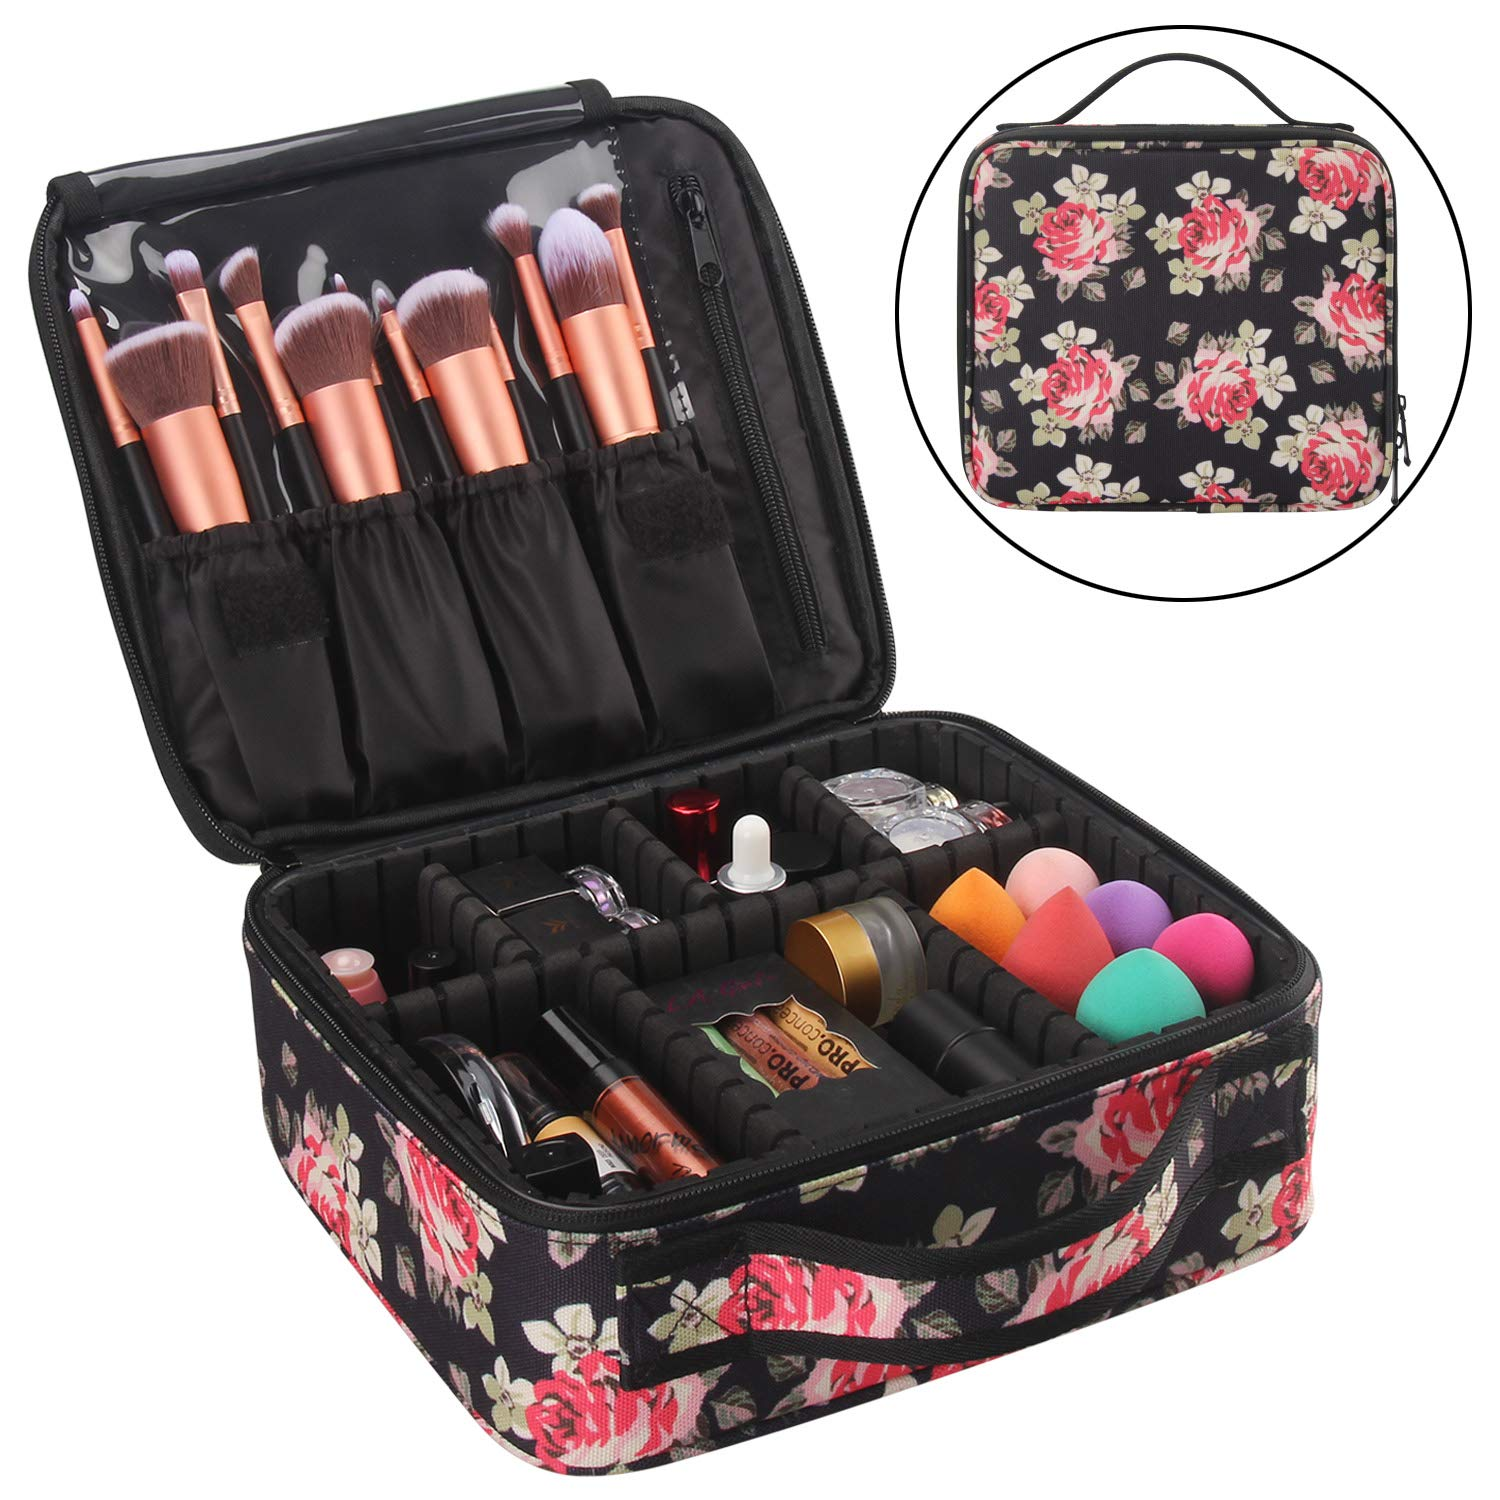 Chomeiu Marble Makeup Case, Marble Cosmetic Bag Marble Makeup Bag Waterproof for Cosmetics Tools with Adjustable Dividers (Marbl